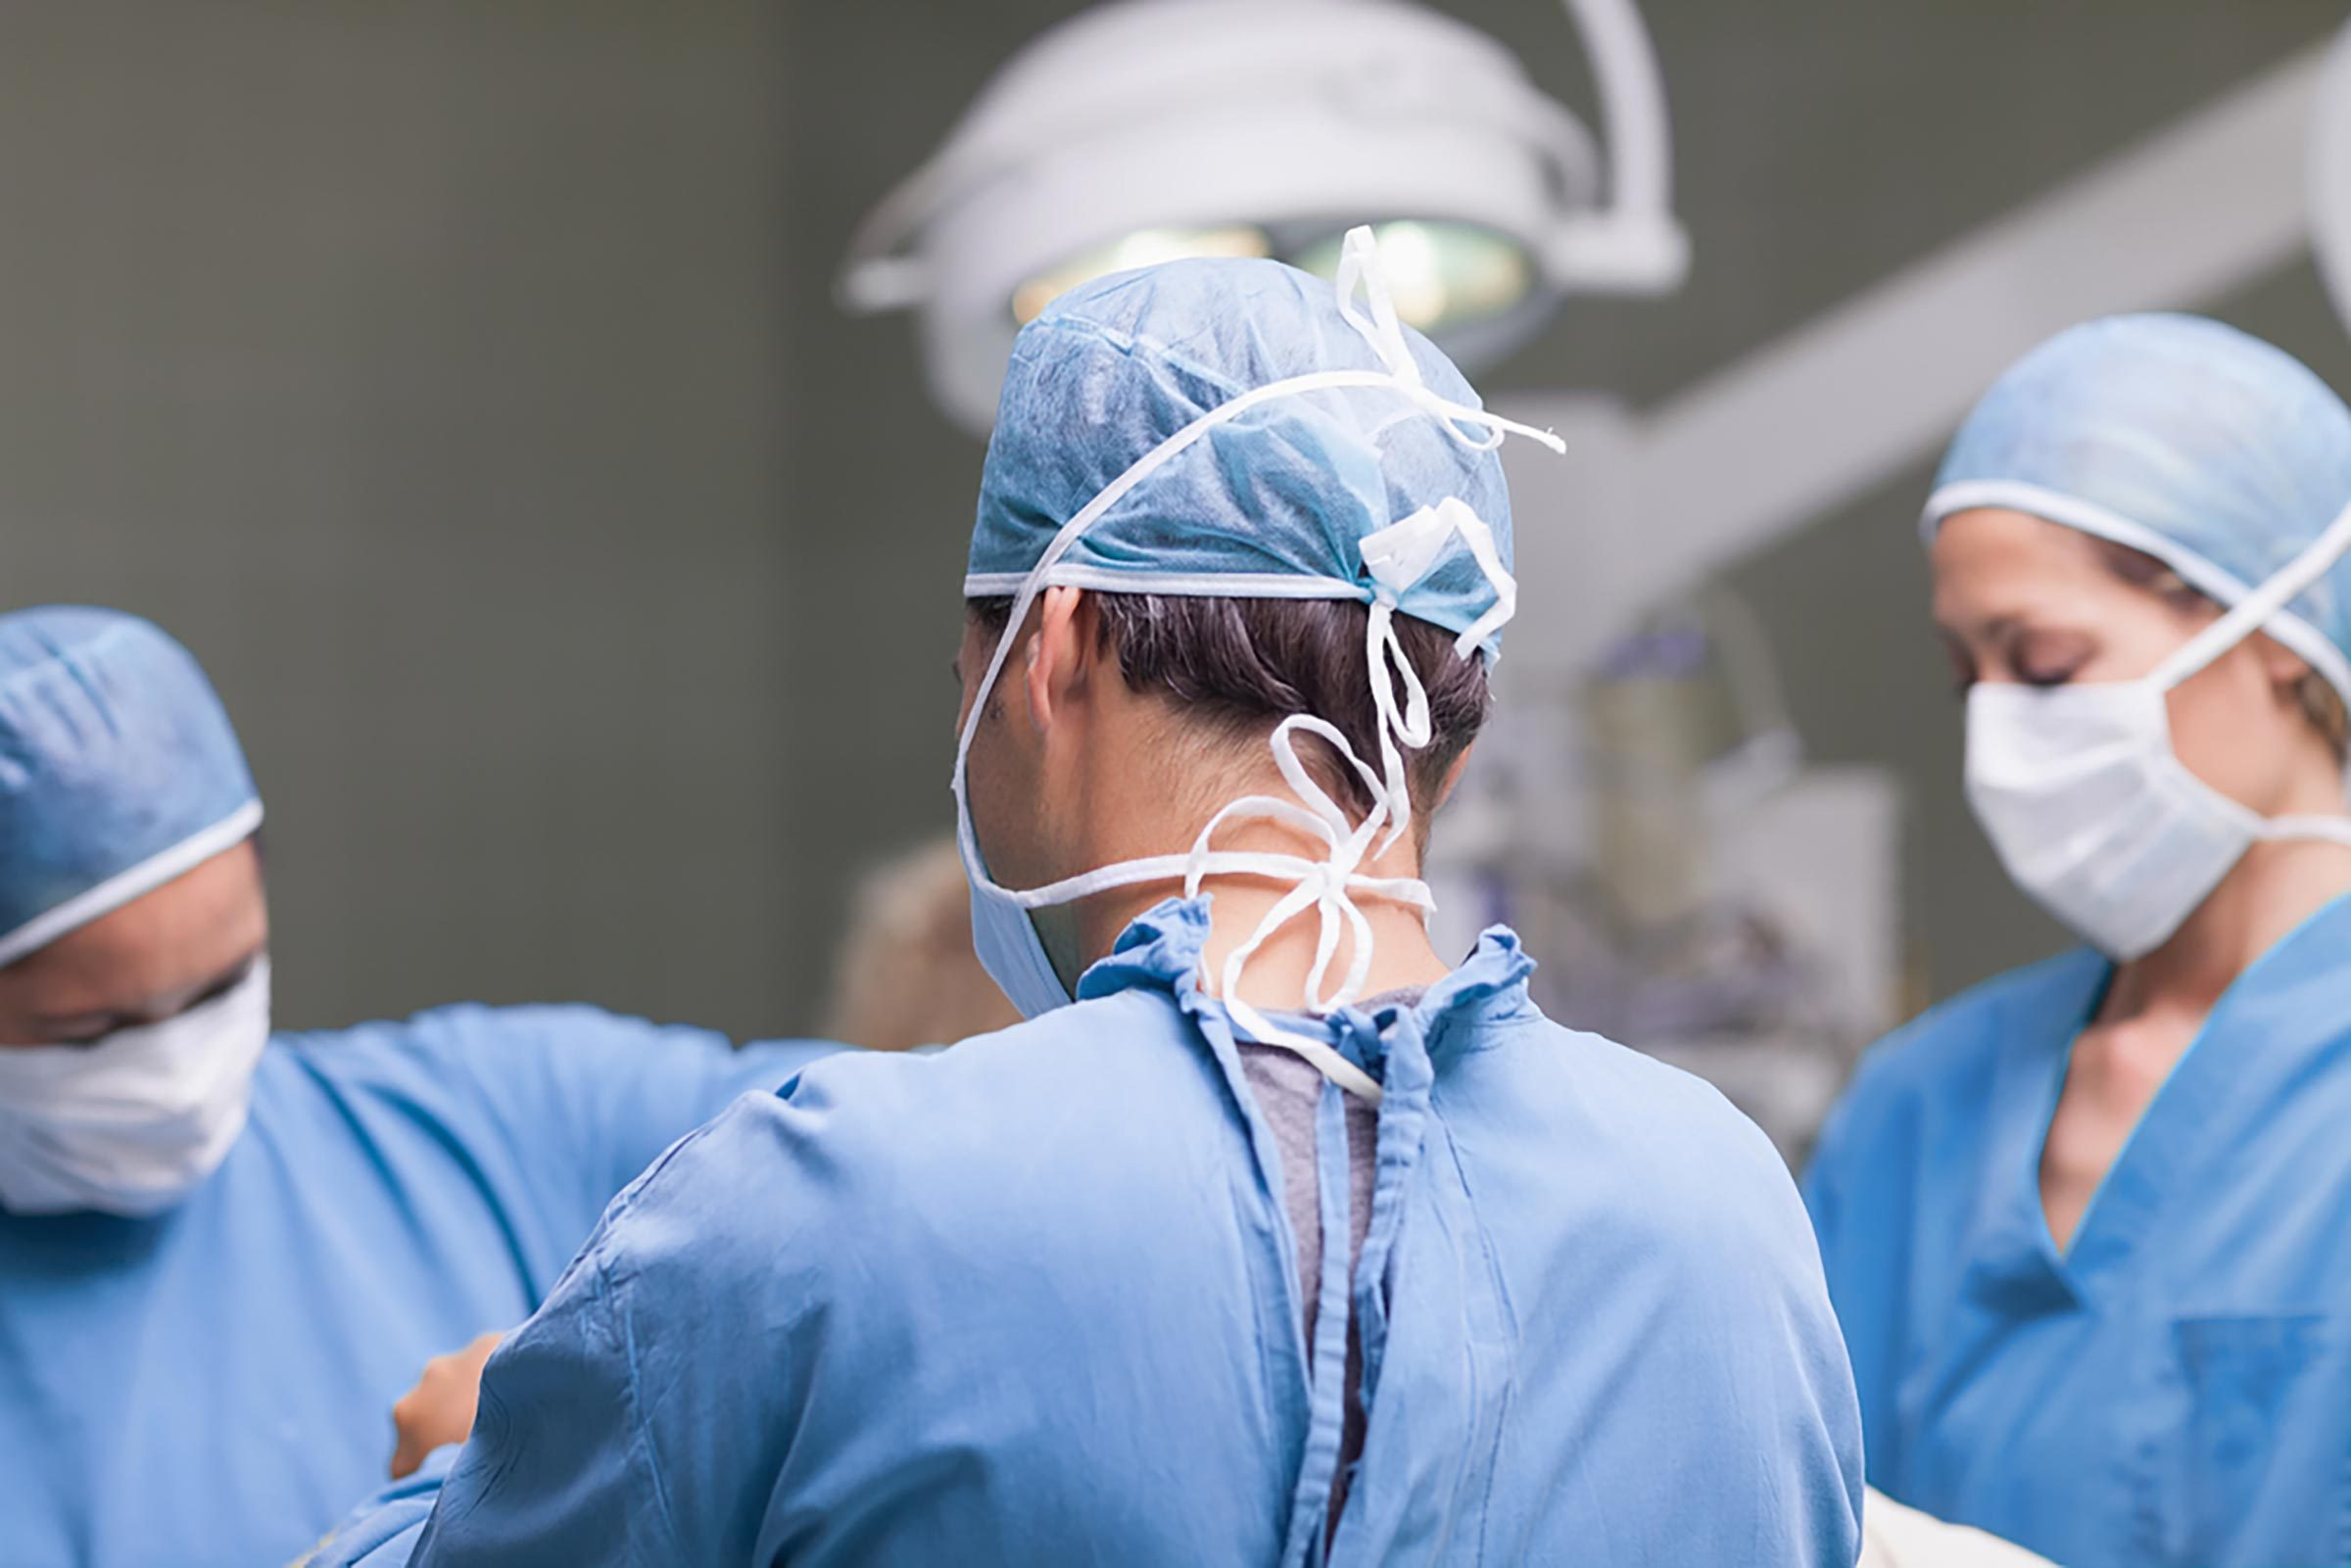 surgeon in operating room